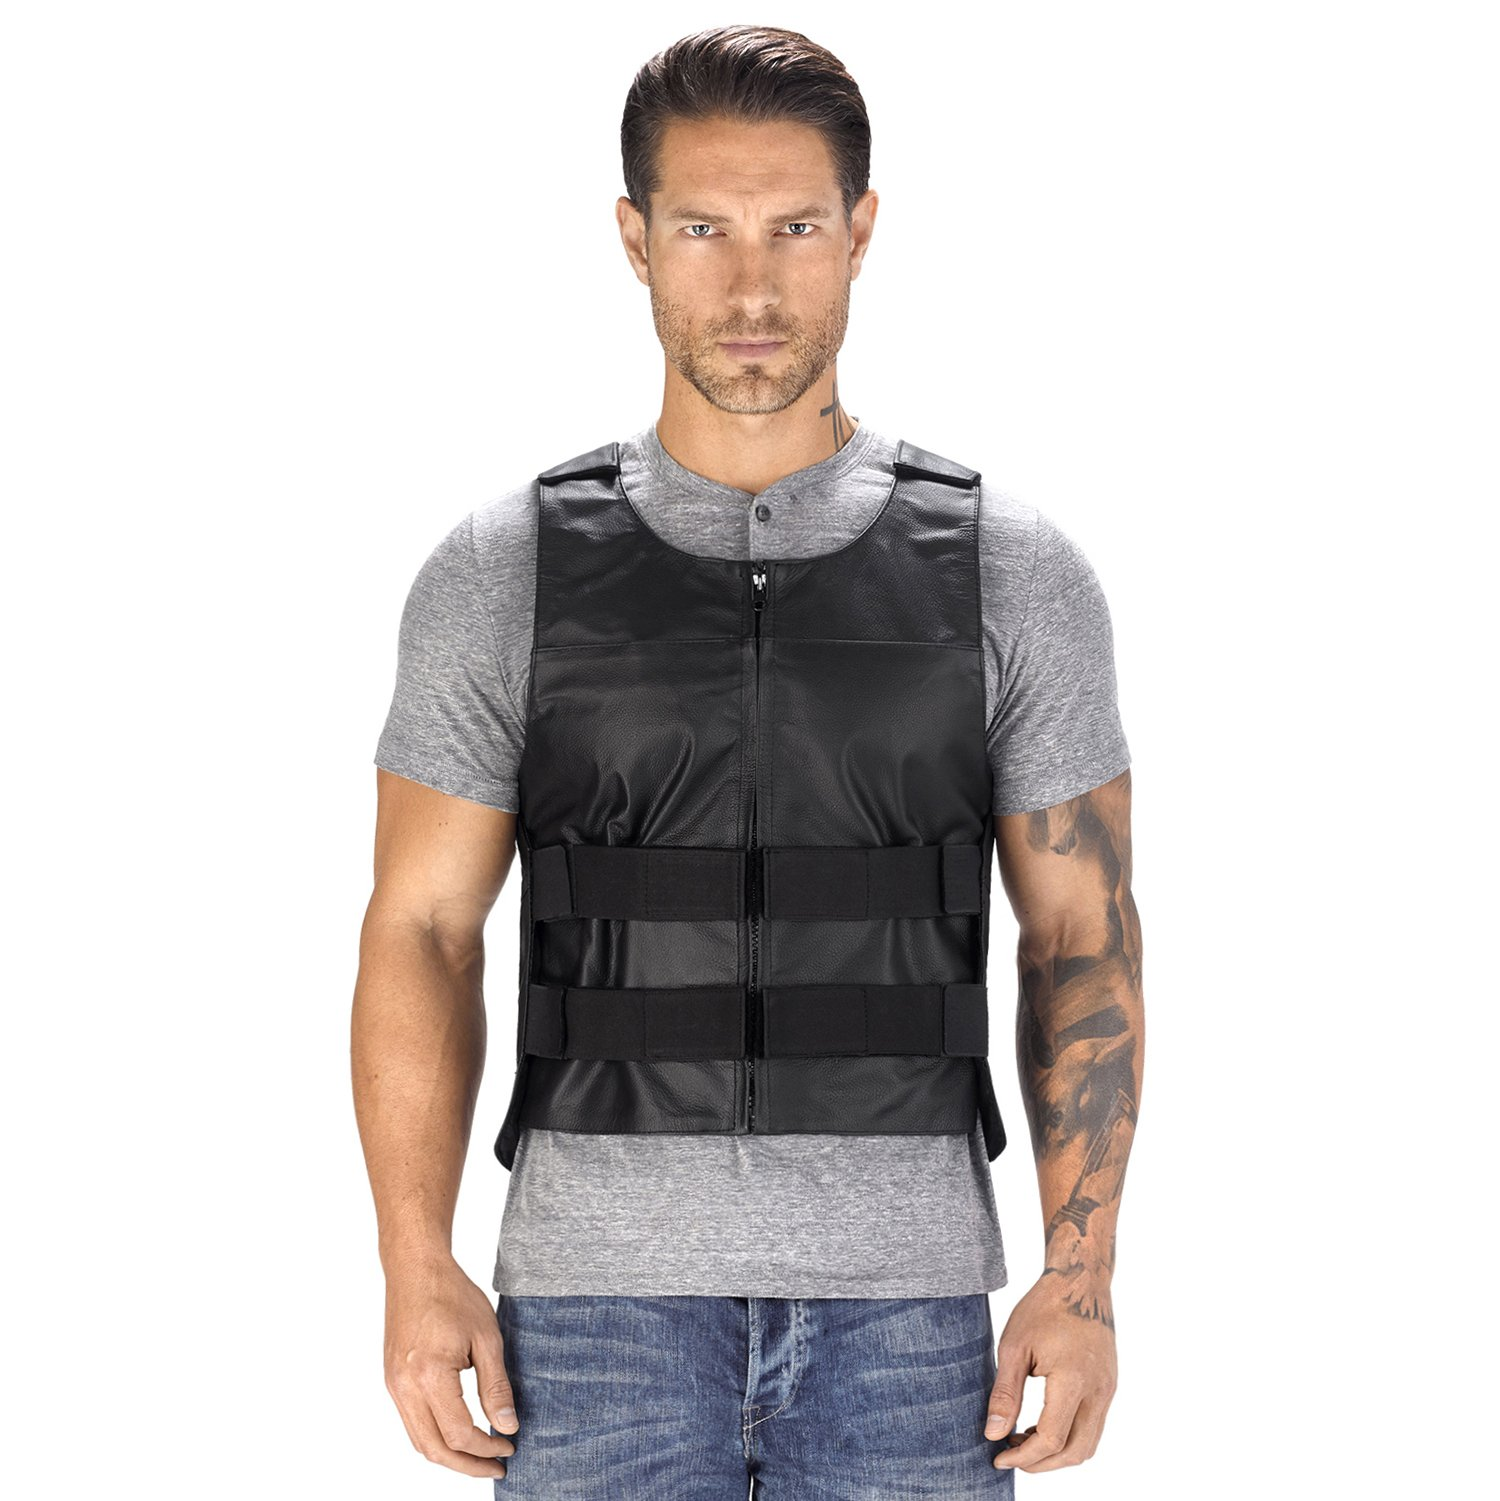 Viking Cycle Revolver Leather Motorcycle Vest for Men (Medium)